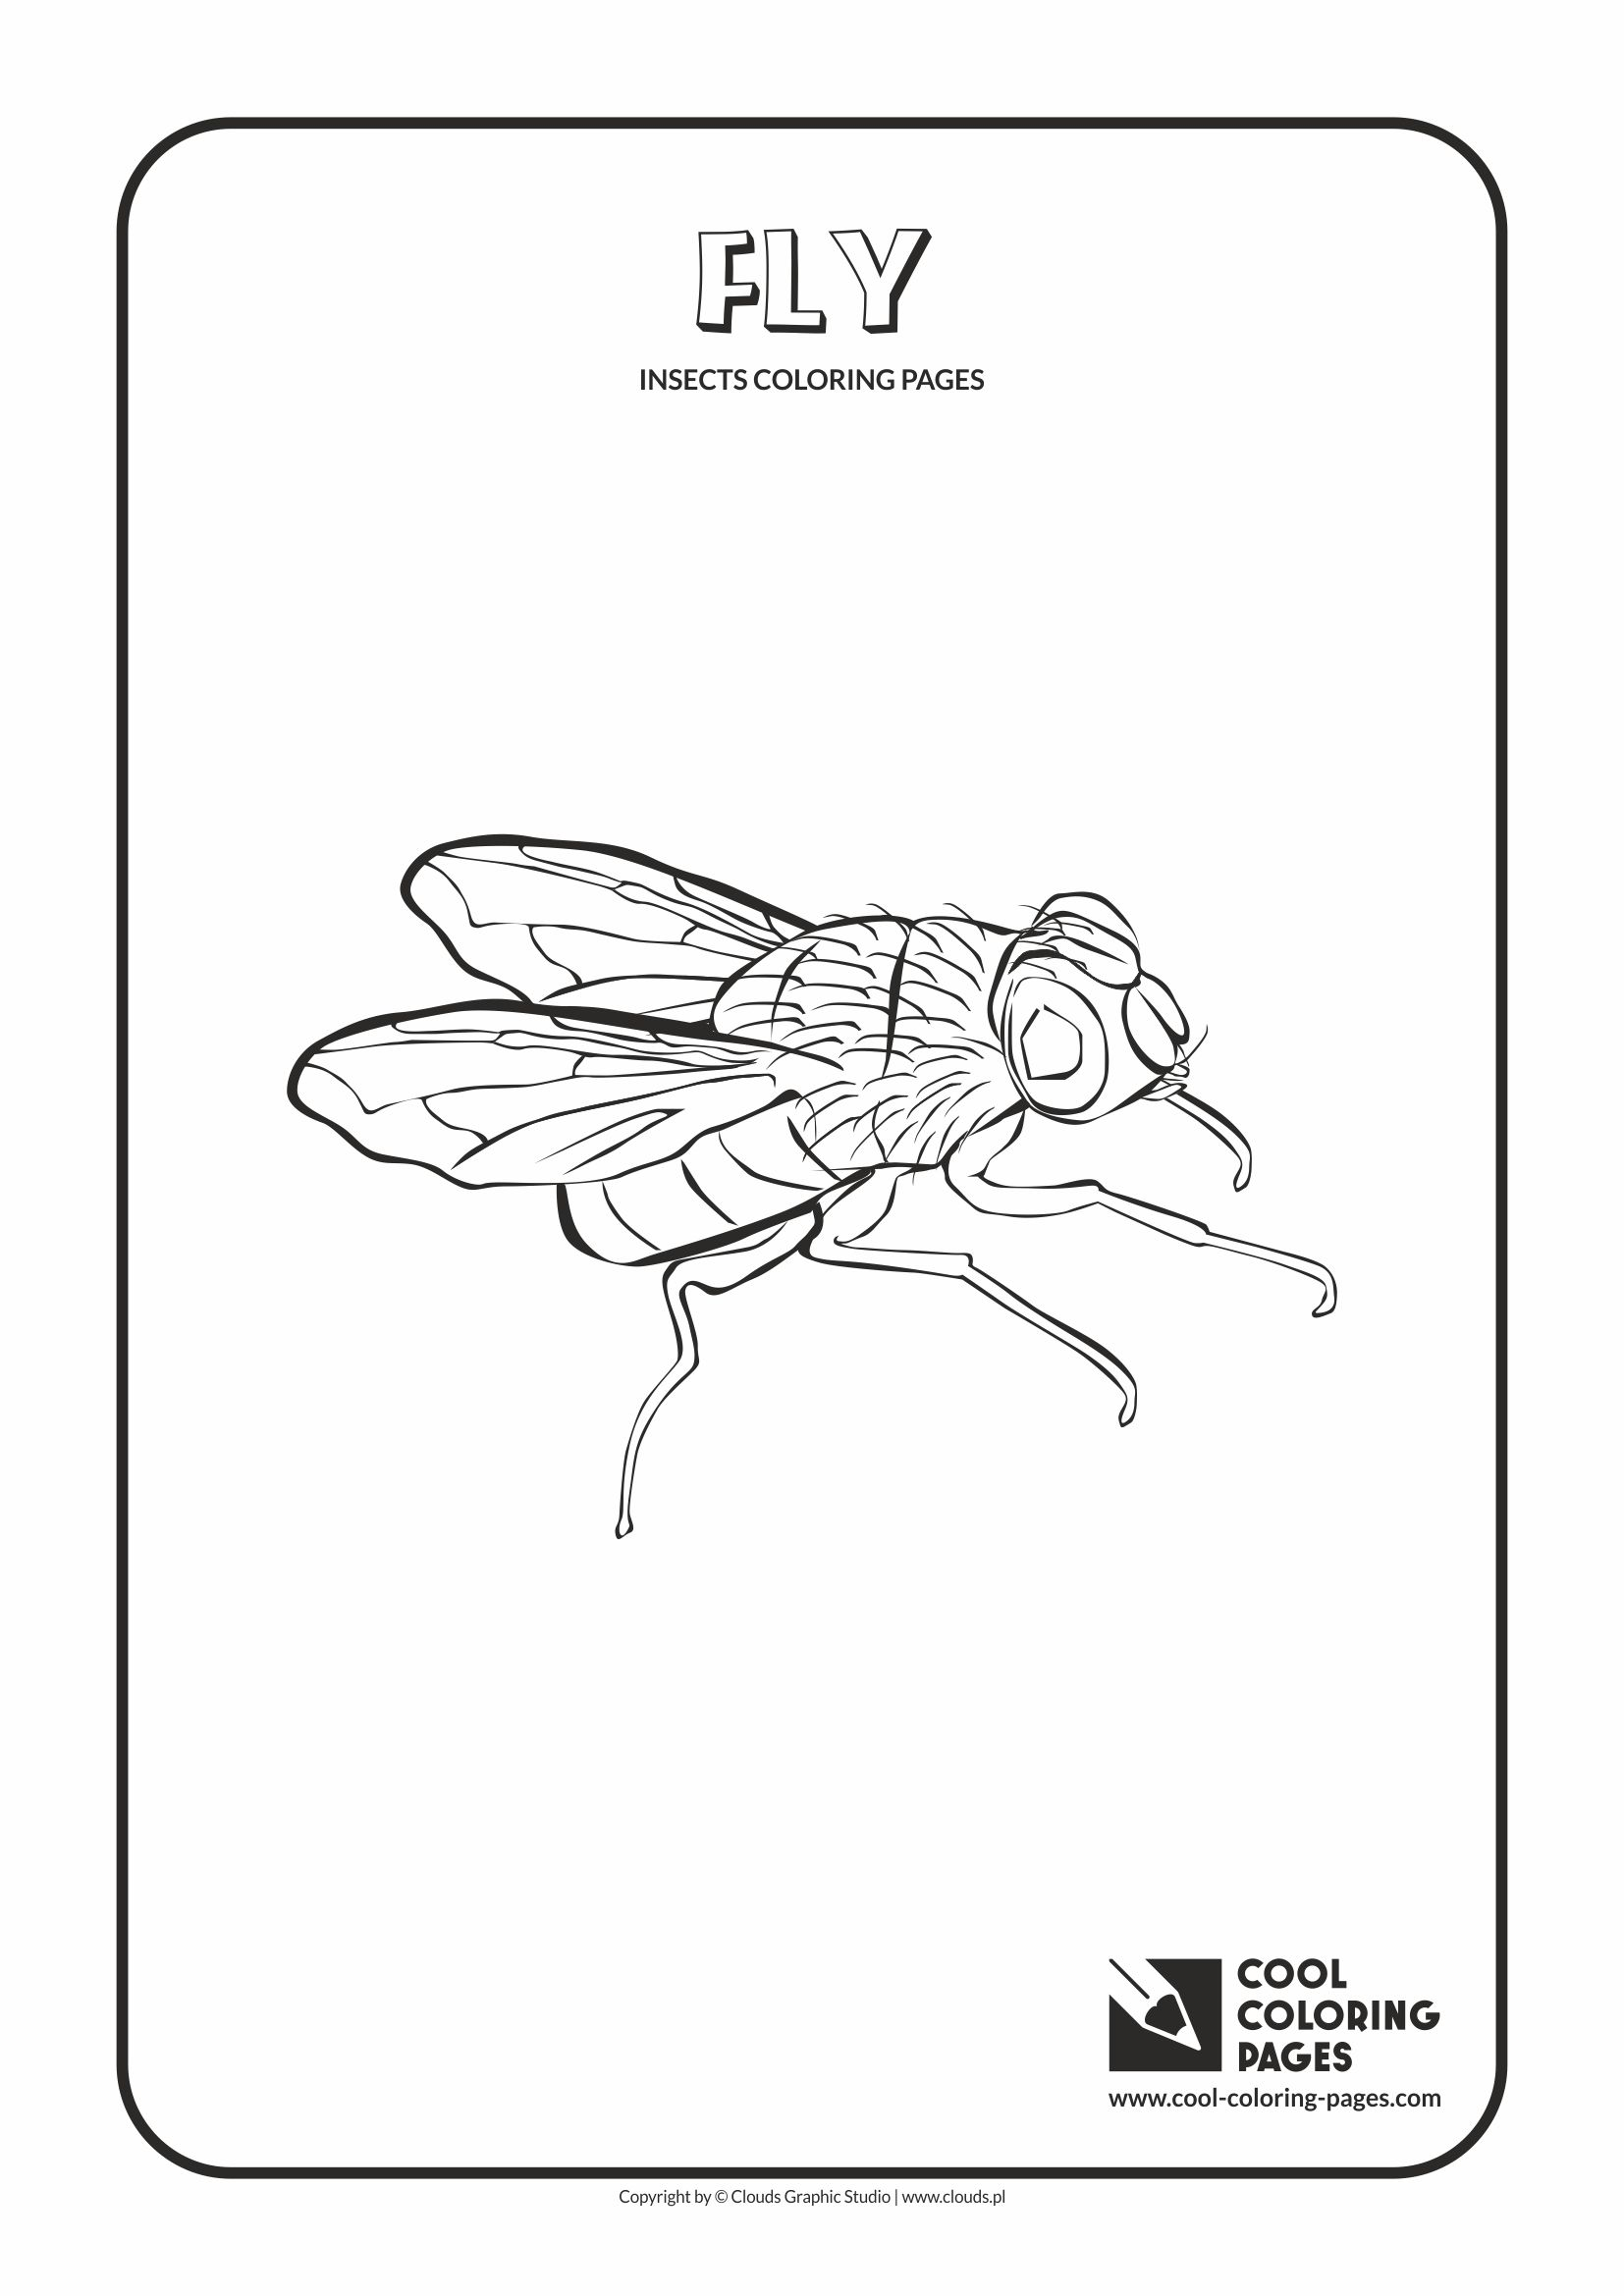 Cool Coloring Pages Insects coloring